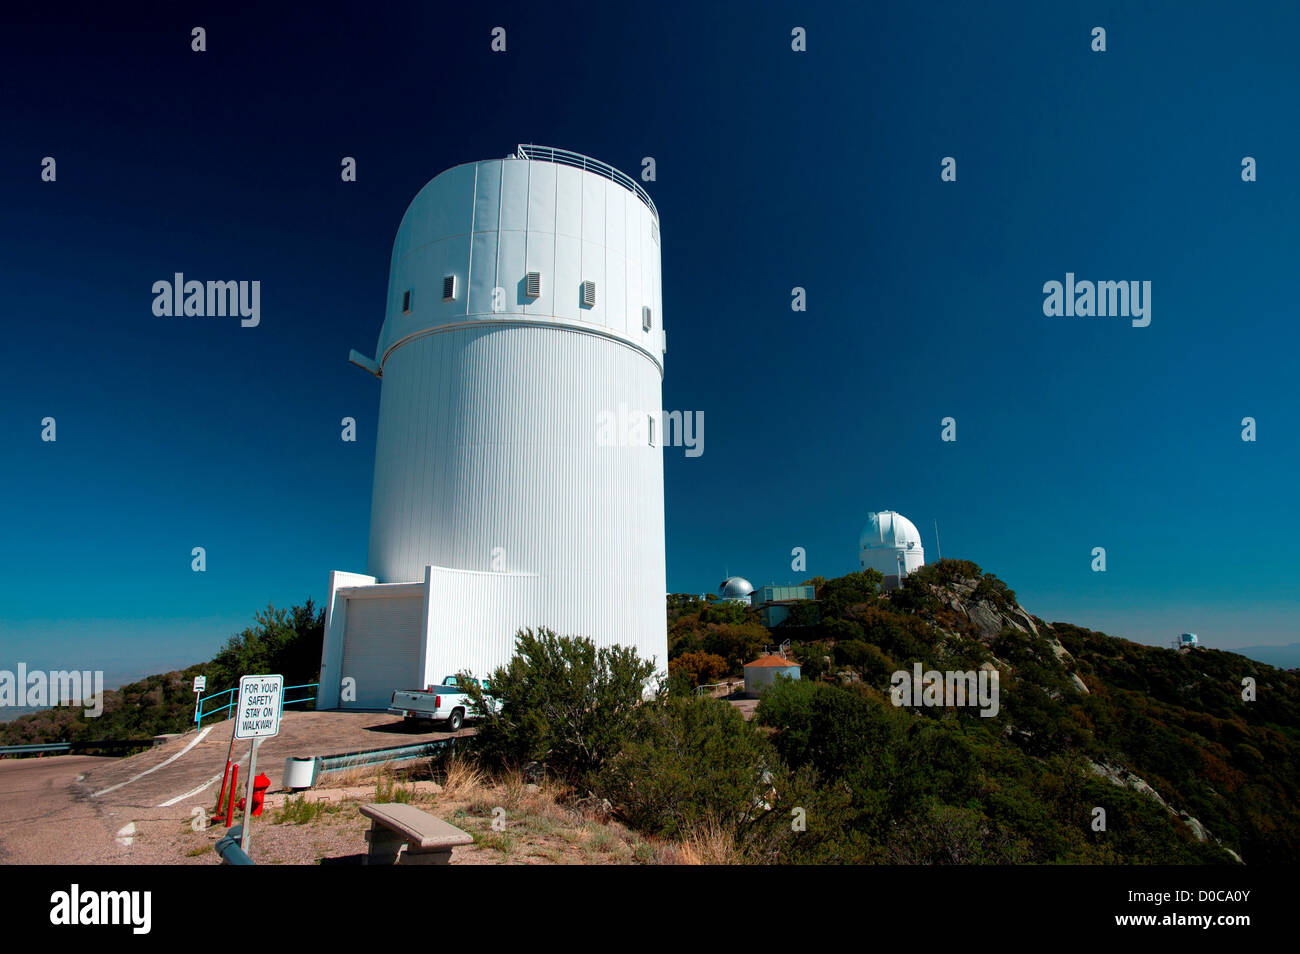 The 2.3-meter Bok Reflector telescope dome is seen at Kitt Peak National Observatory, Arizona - Stock Image